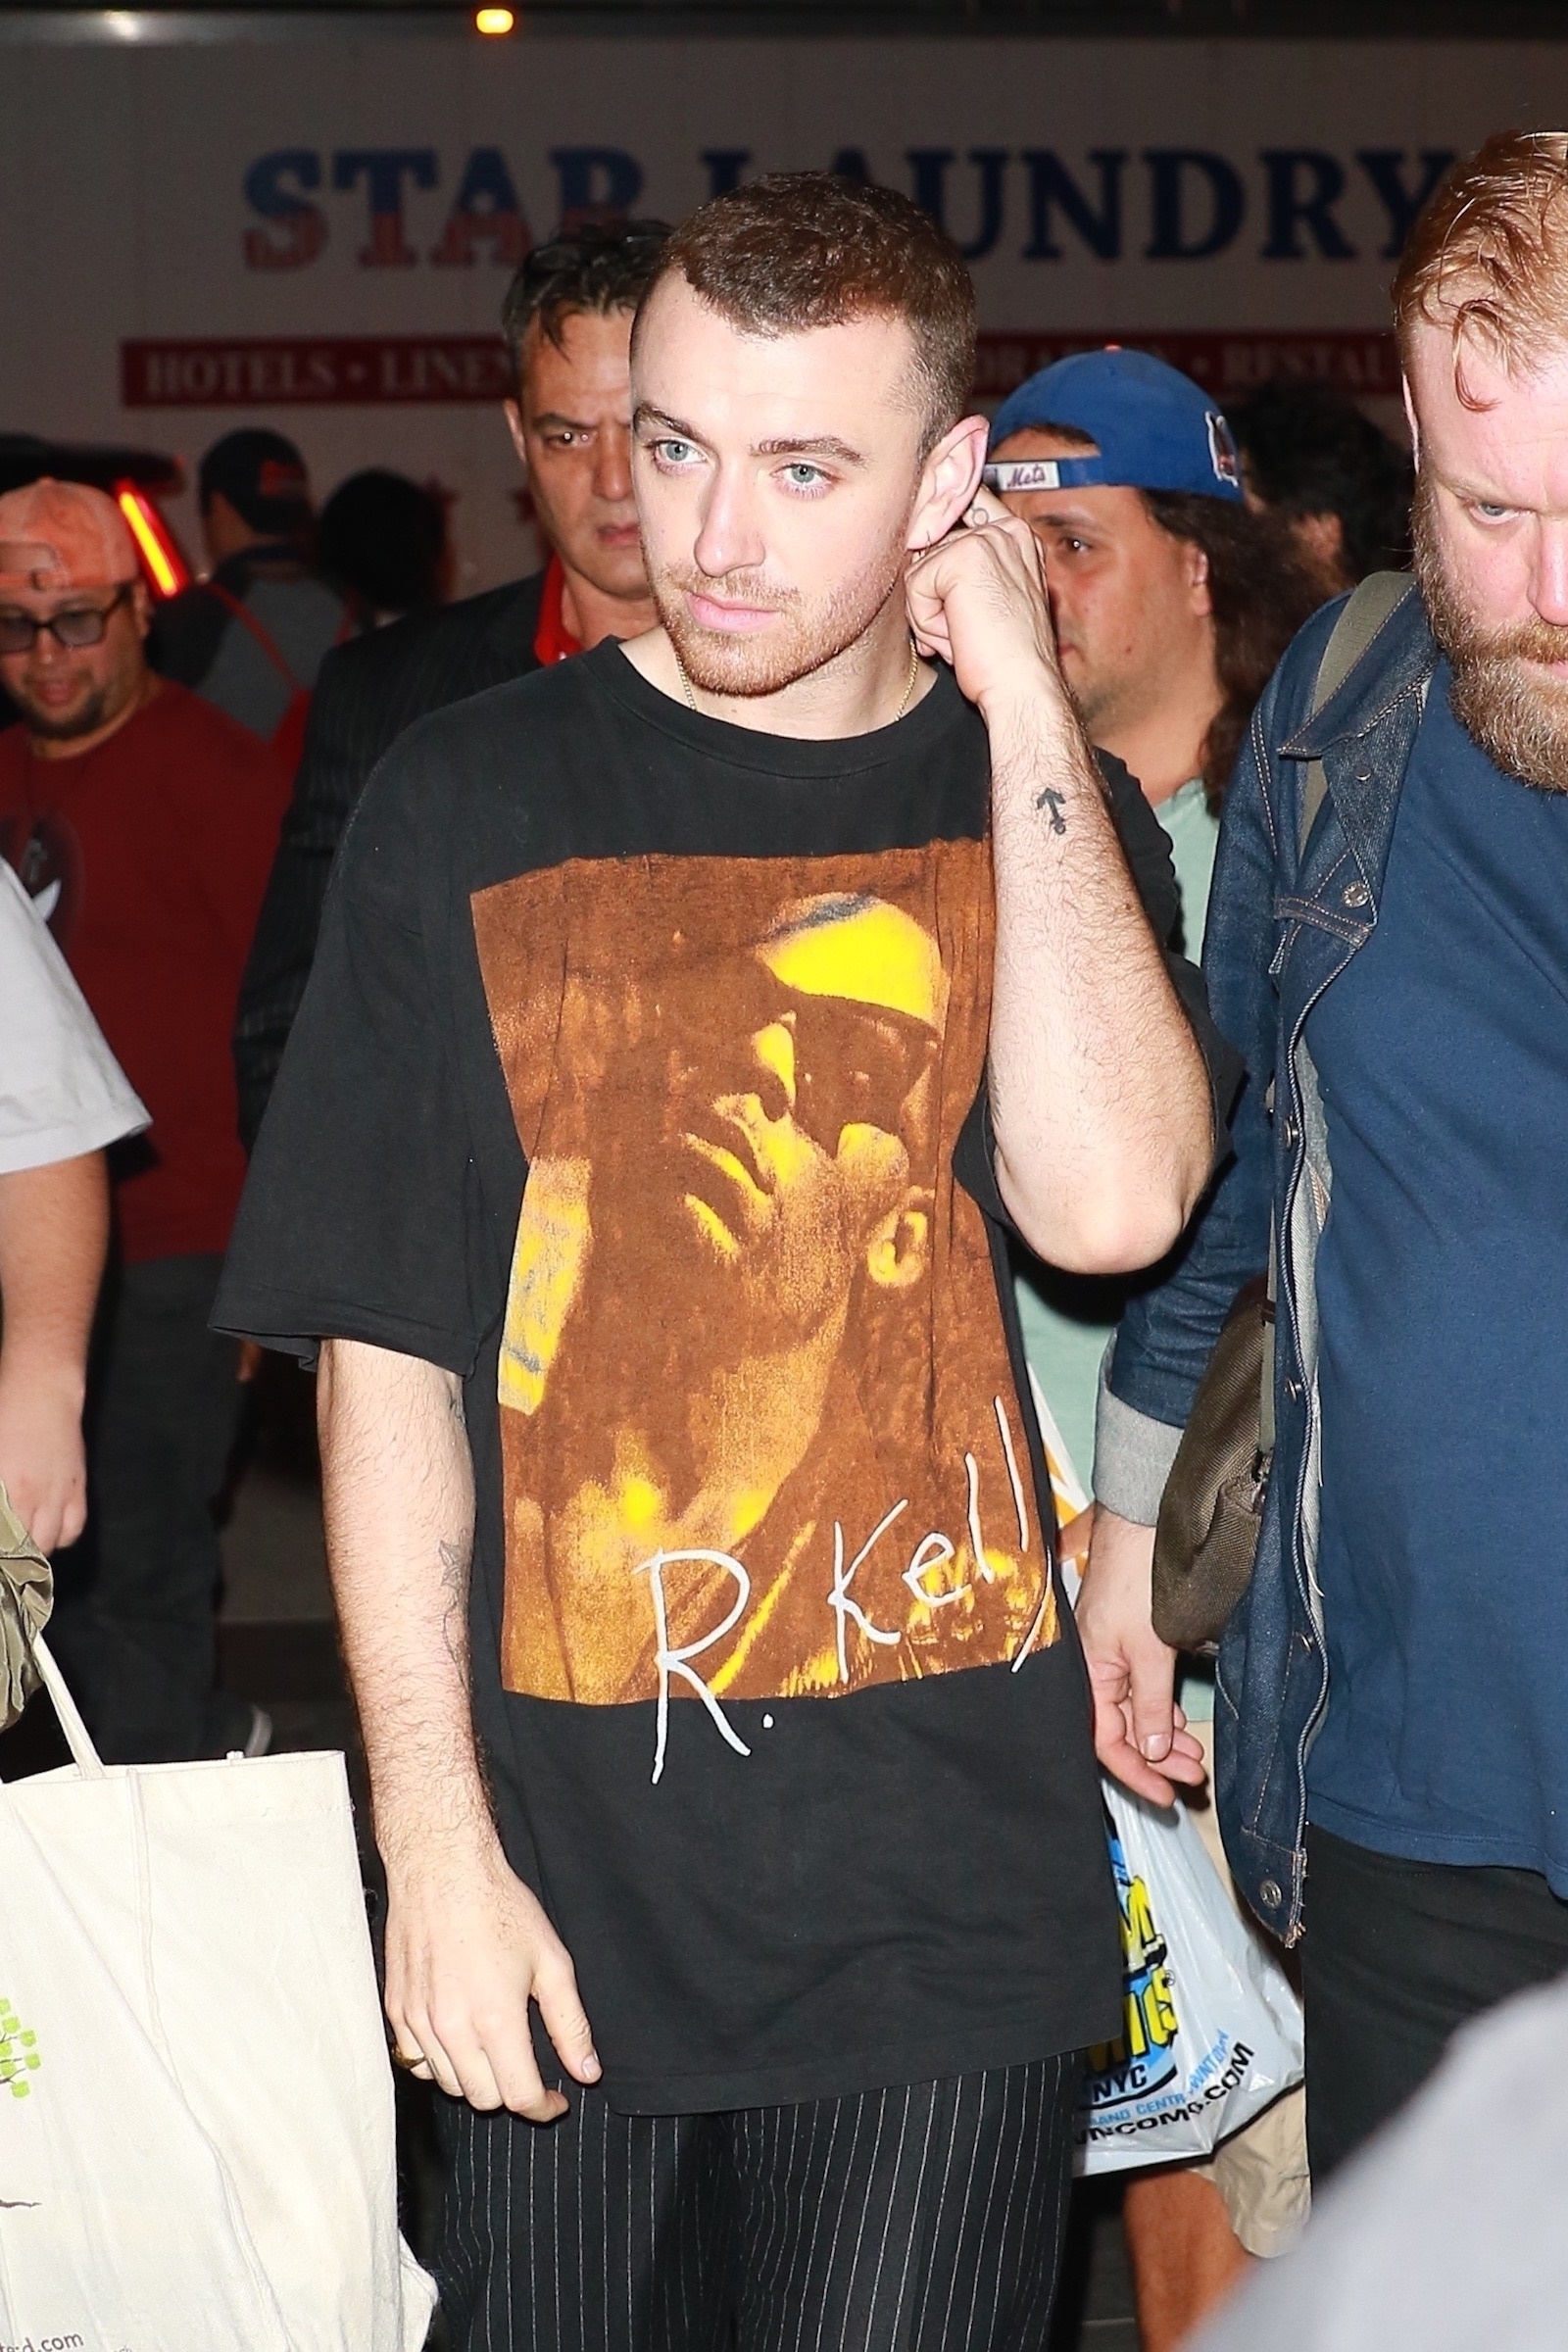 Sam Smith wearing R Kelly T Shirt